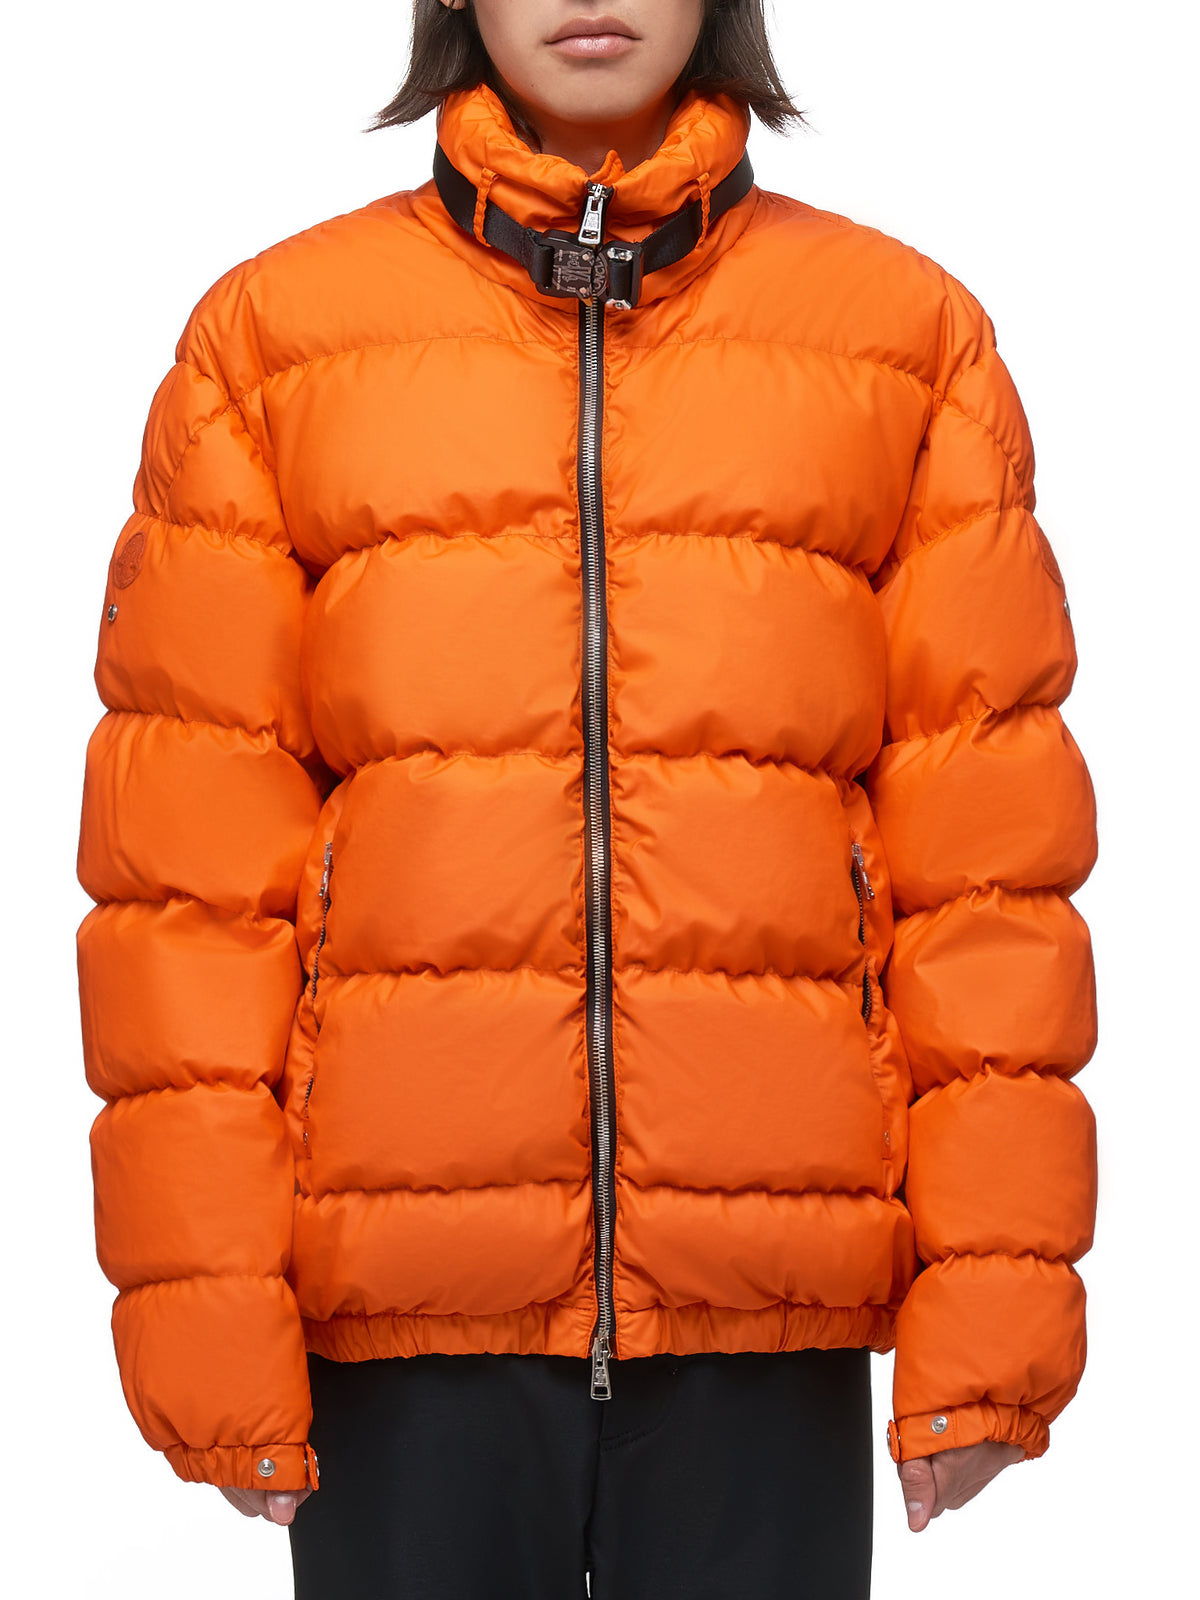 Deimos Puffer Jacket (41305-00-302-ORANGE)